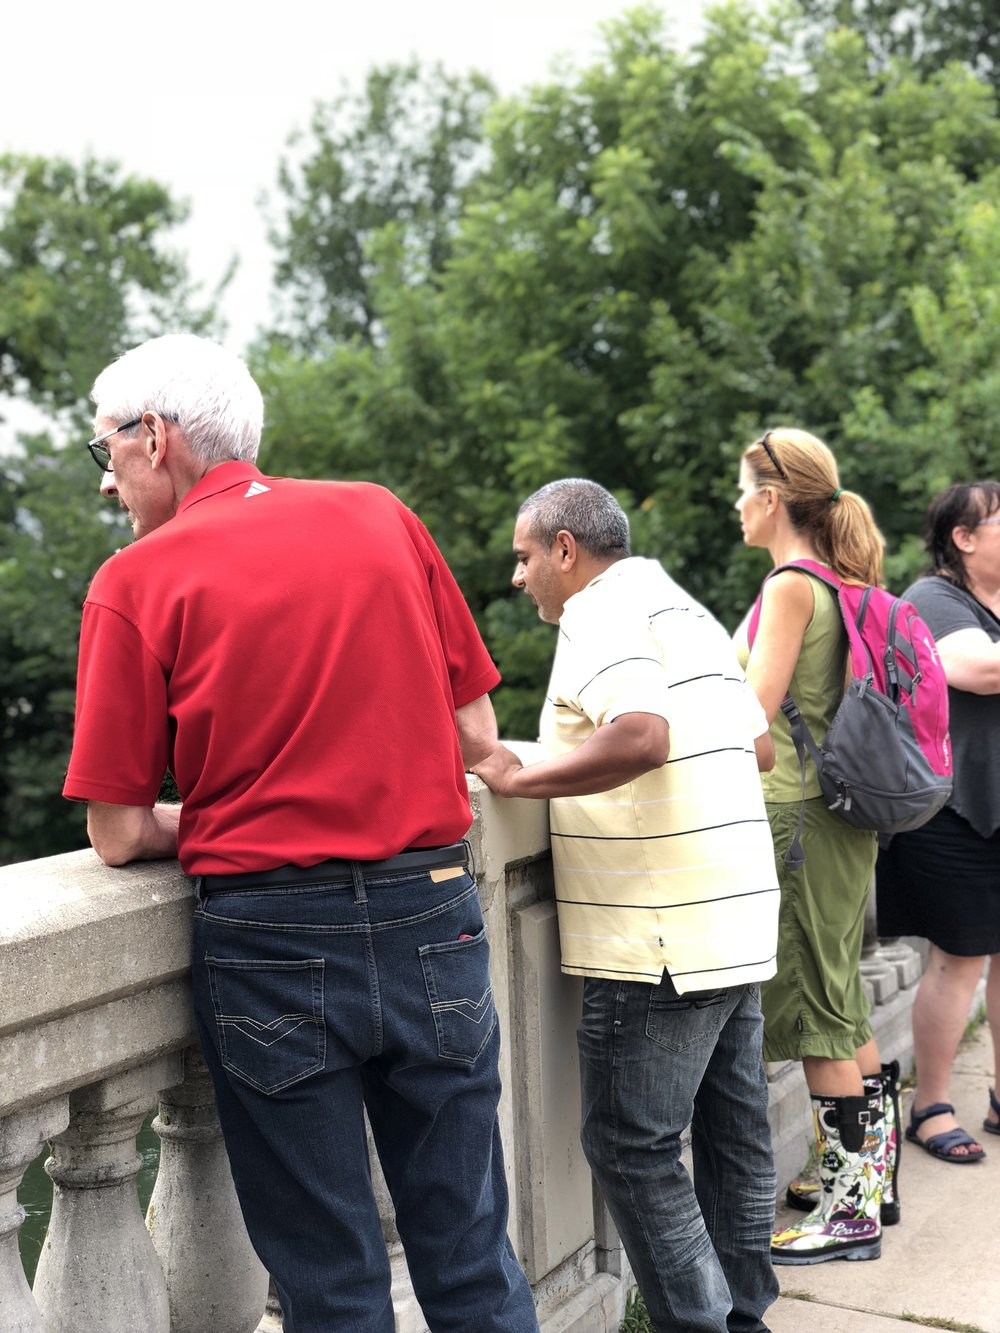 Yogesh tours the flood damage with future governor Evers, State Rep. Taylor and Alder Rummel